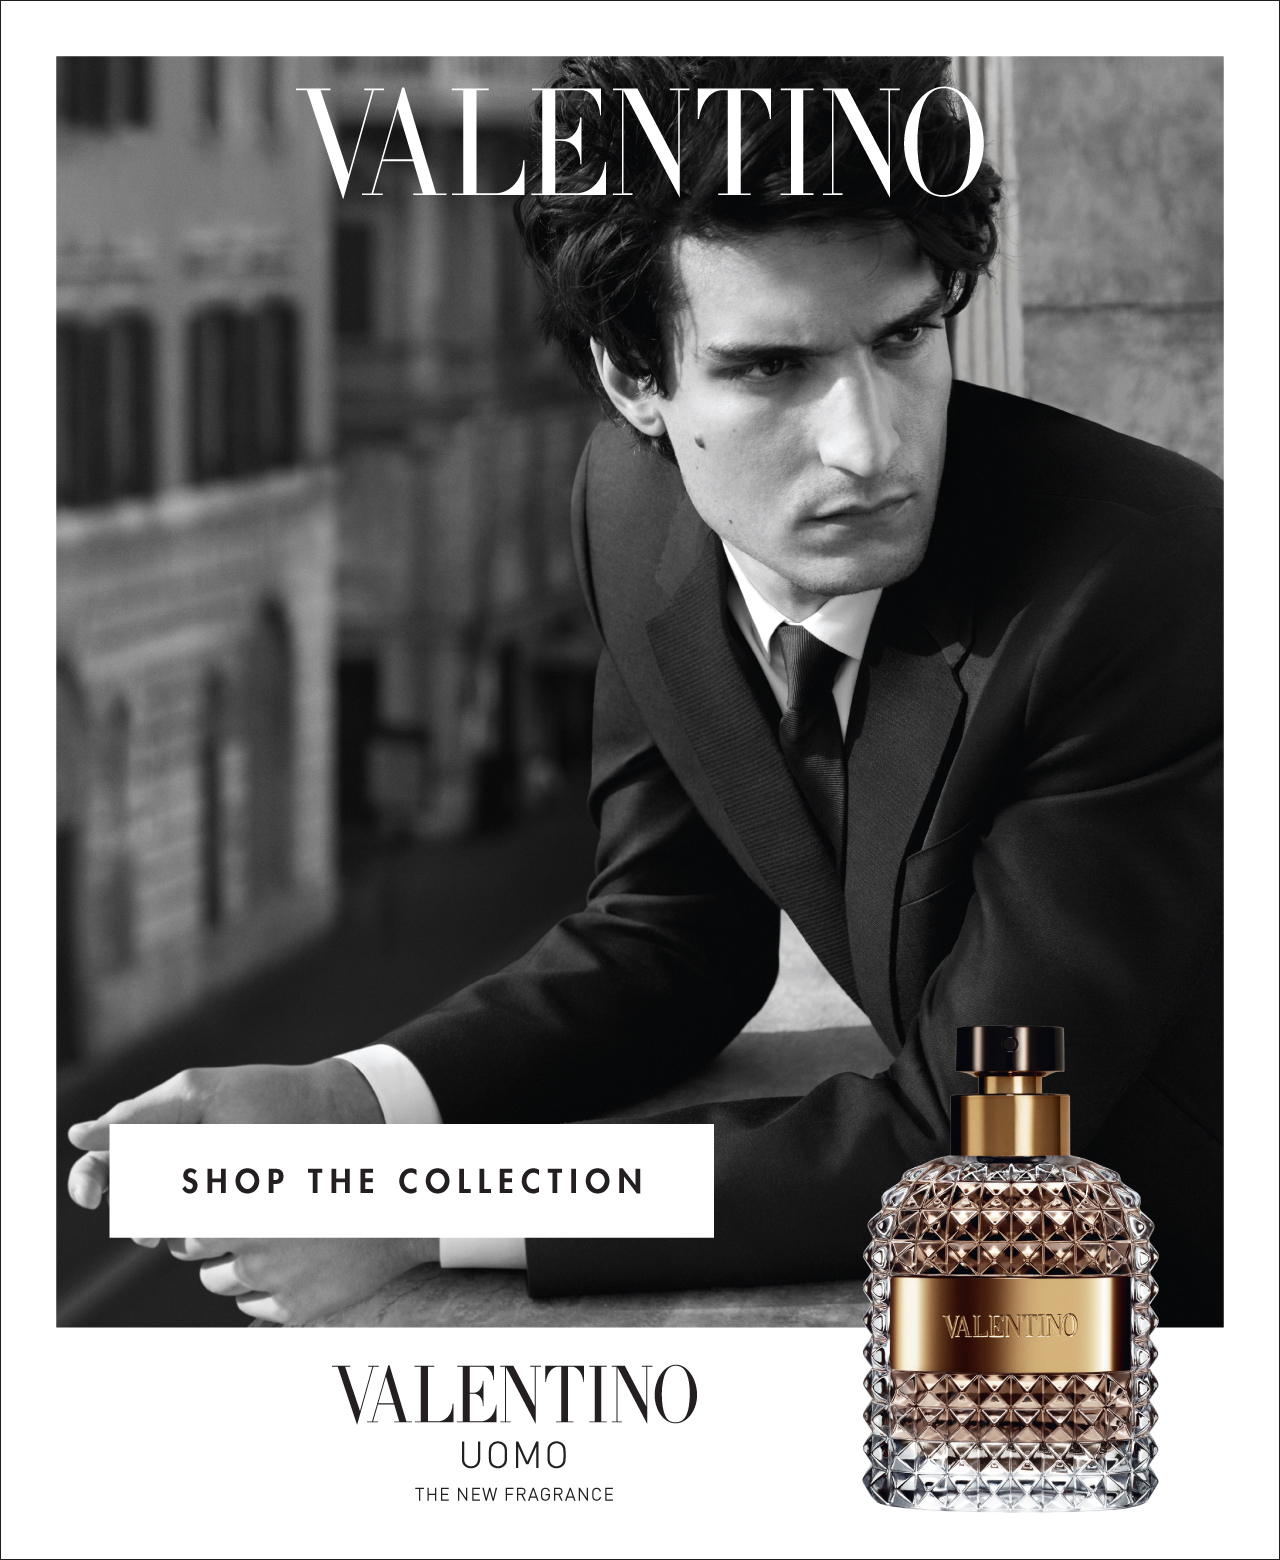 Valentino UOMO The New Fragrance